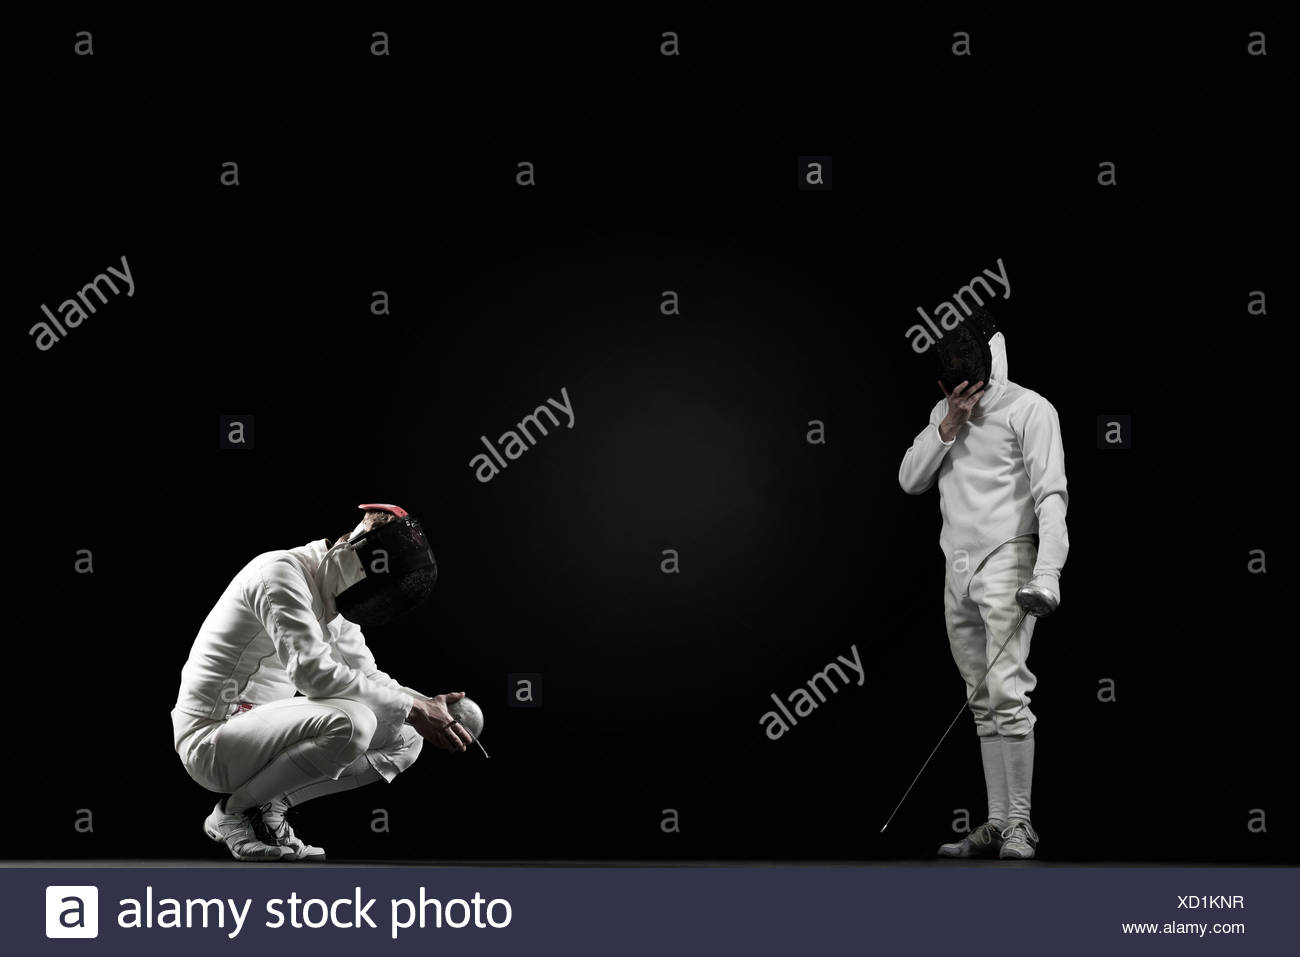 Winning fencer and defeated fencer - Stock Image